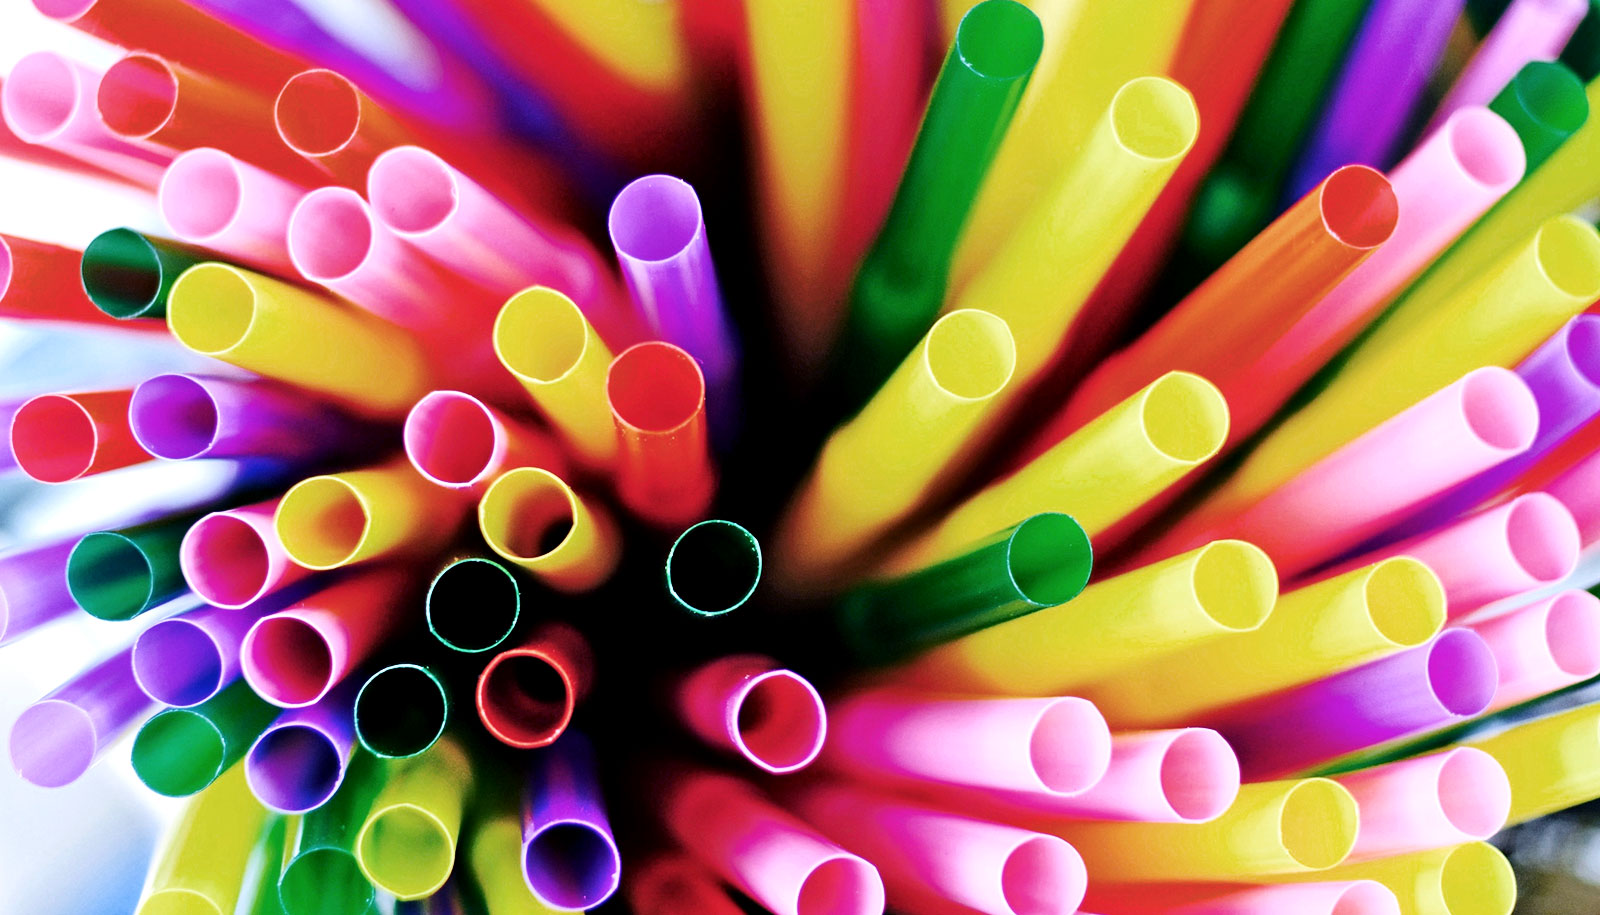 Can banning plastic straws save the oceans? - Futurity